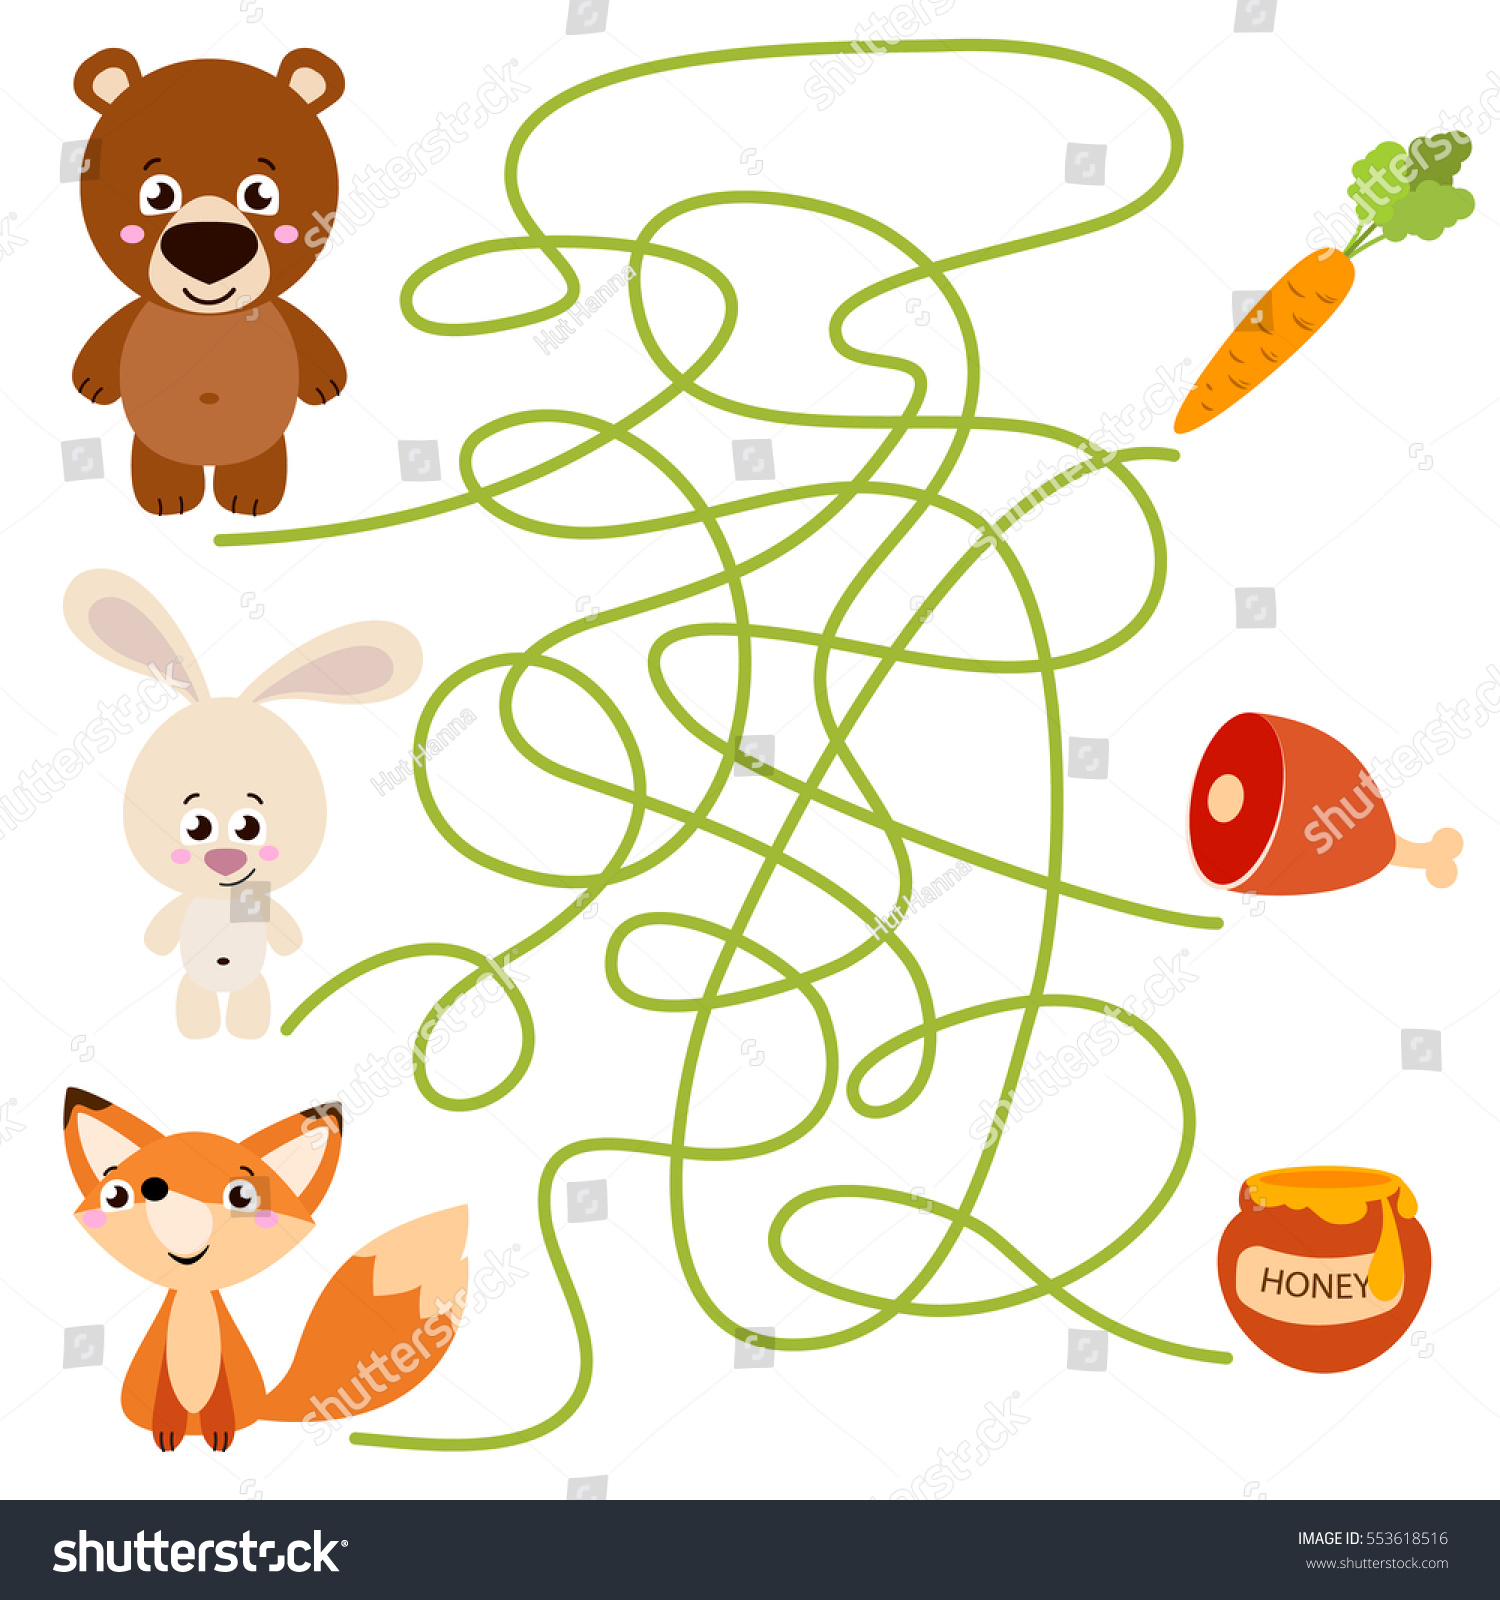 Cute Animal Educational Maze Game Vector Stock Vector